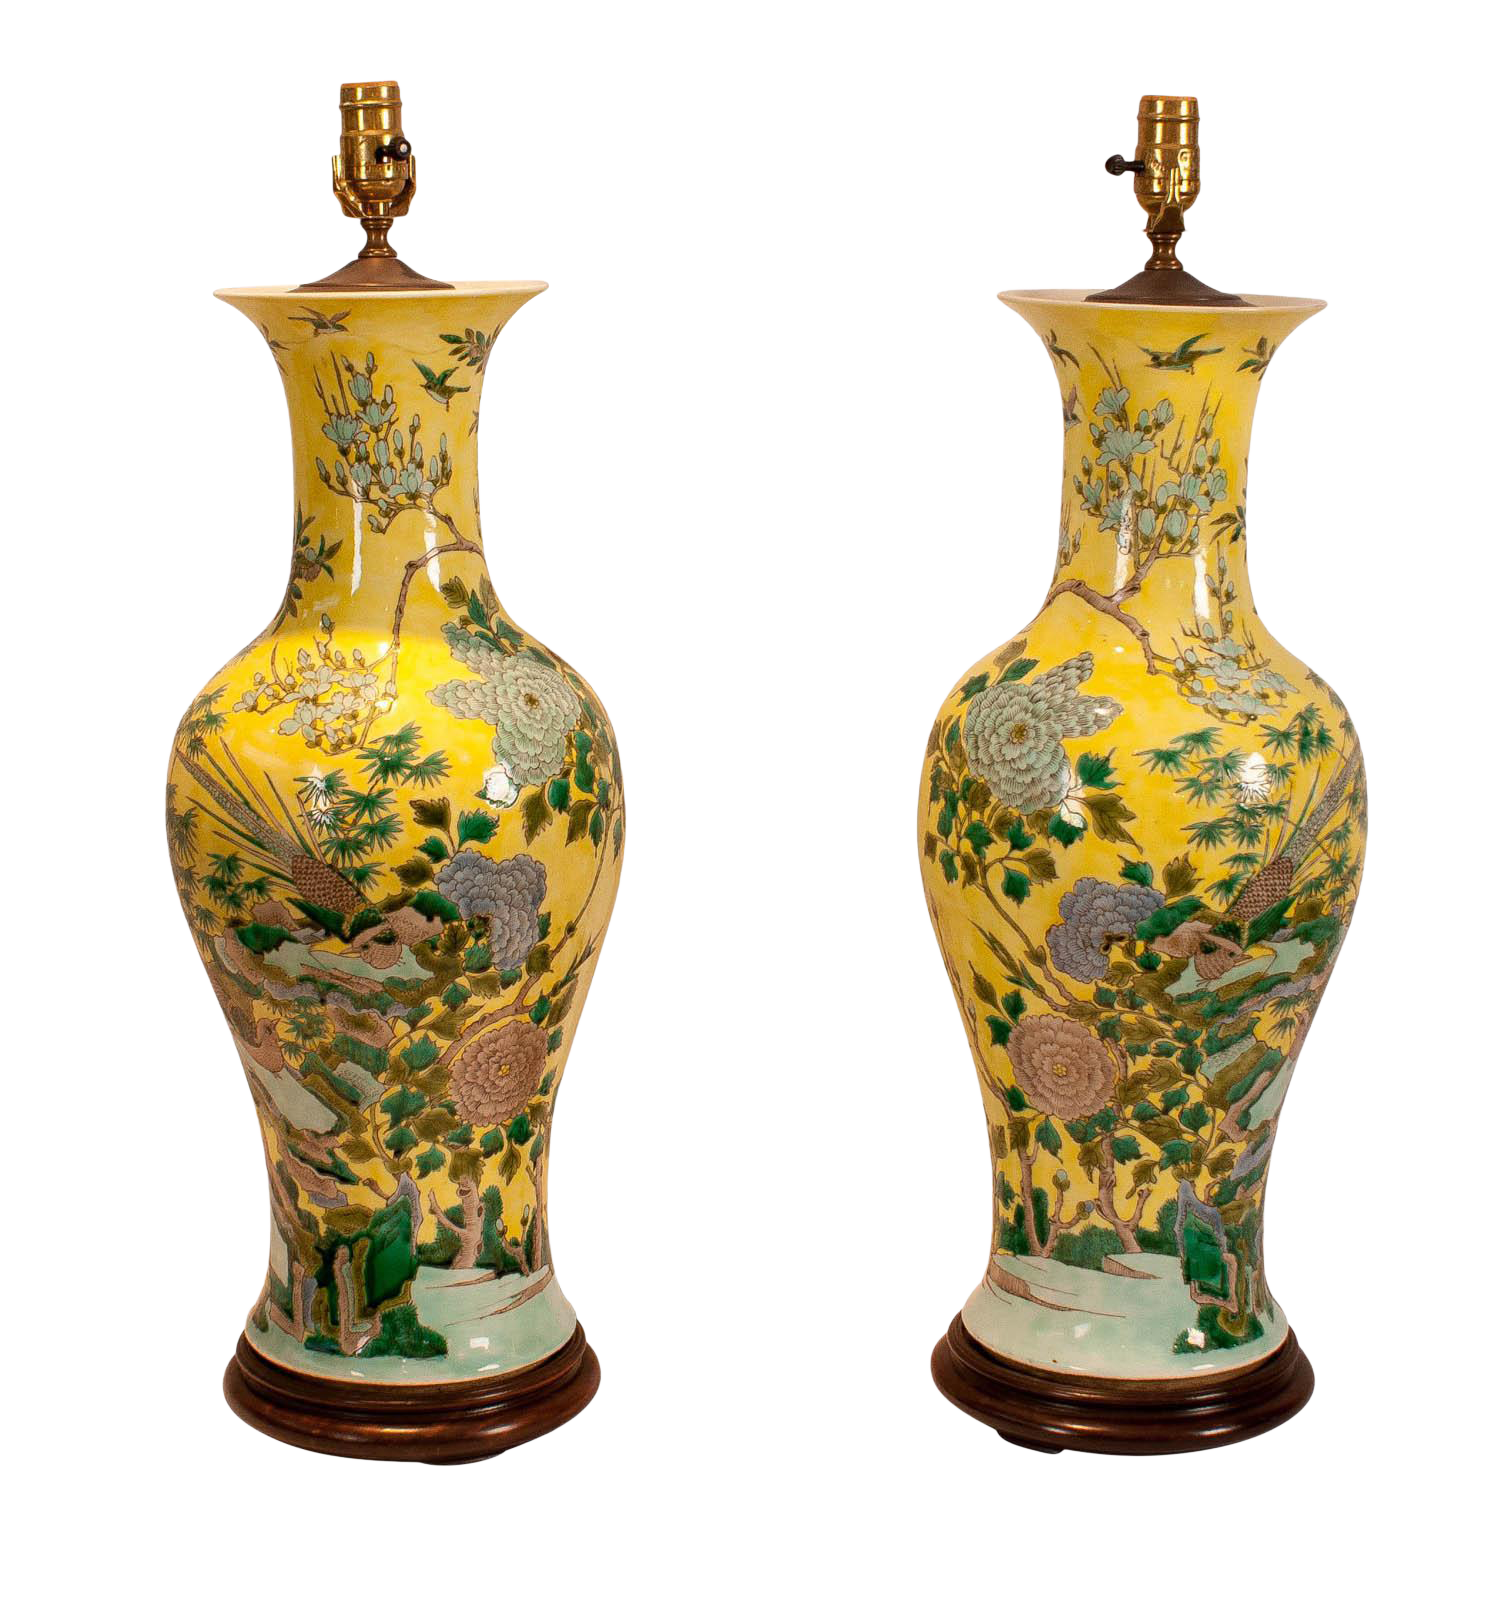 1915 China Republic Period Yellow Porcelain Table Lamps   A Pair For Sale